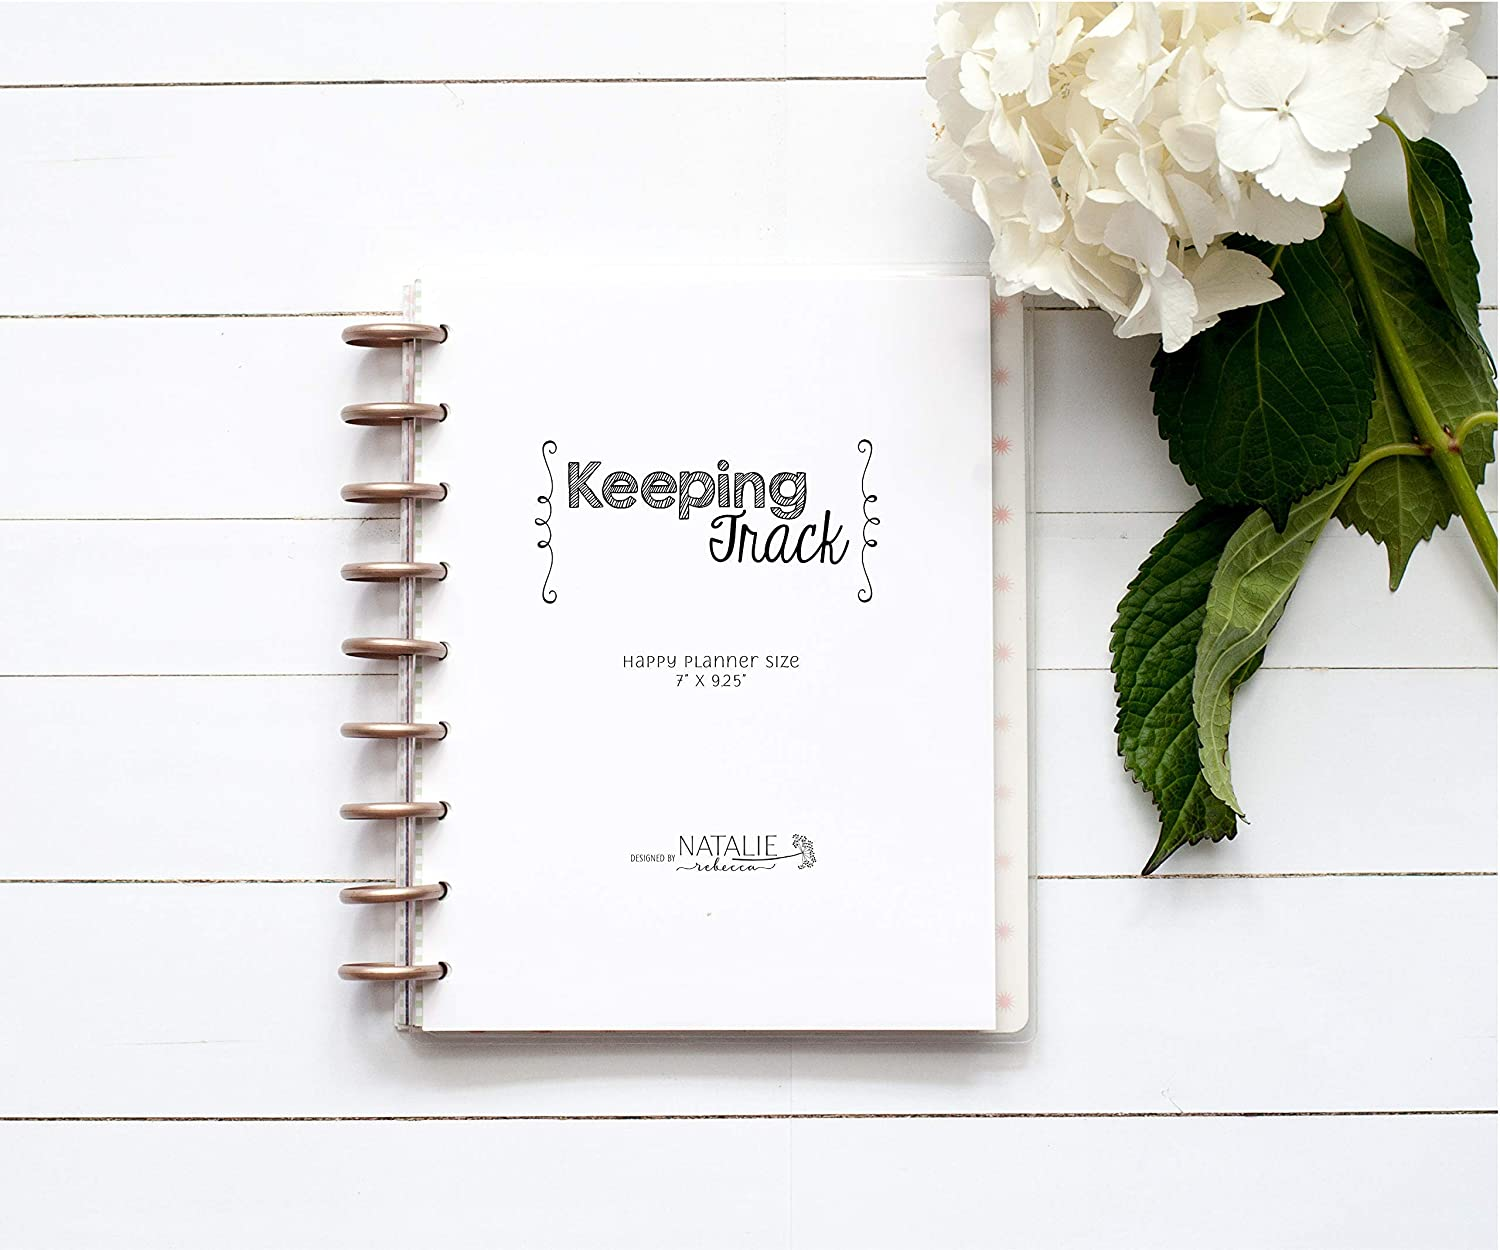 Keeping Track Inserts for the Happy Planner, Fits 9-Disc Notebook, Habit Tracker, 7